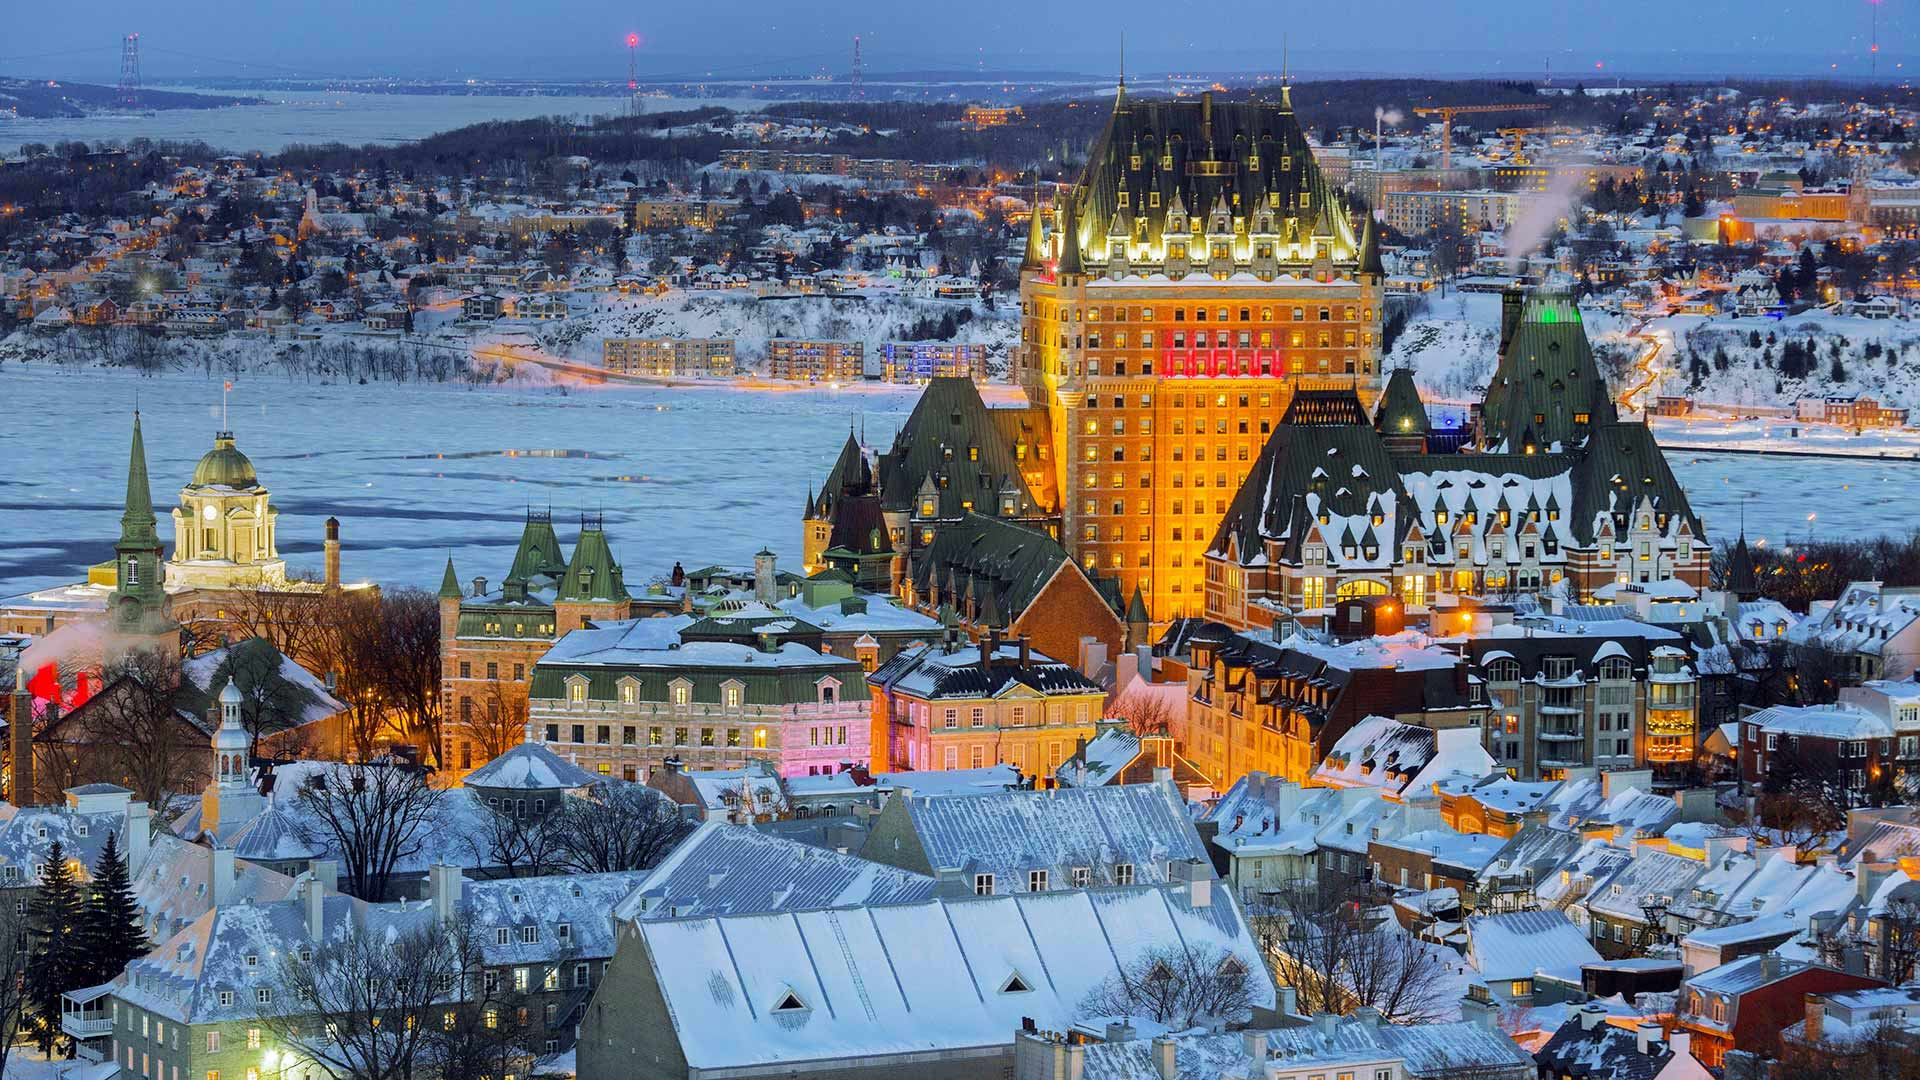 View of the Old City in Quebec City, Canada (© RENAULT Philippe/age fotostock)(Bing United States)